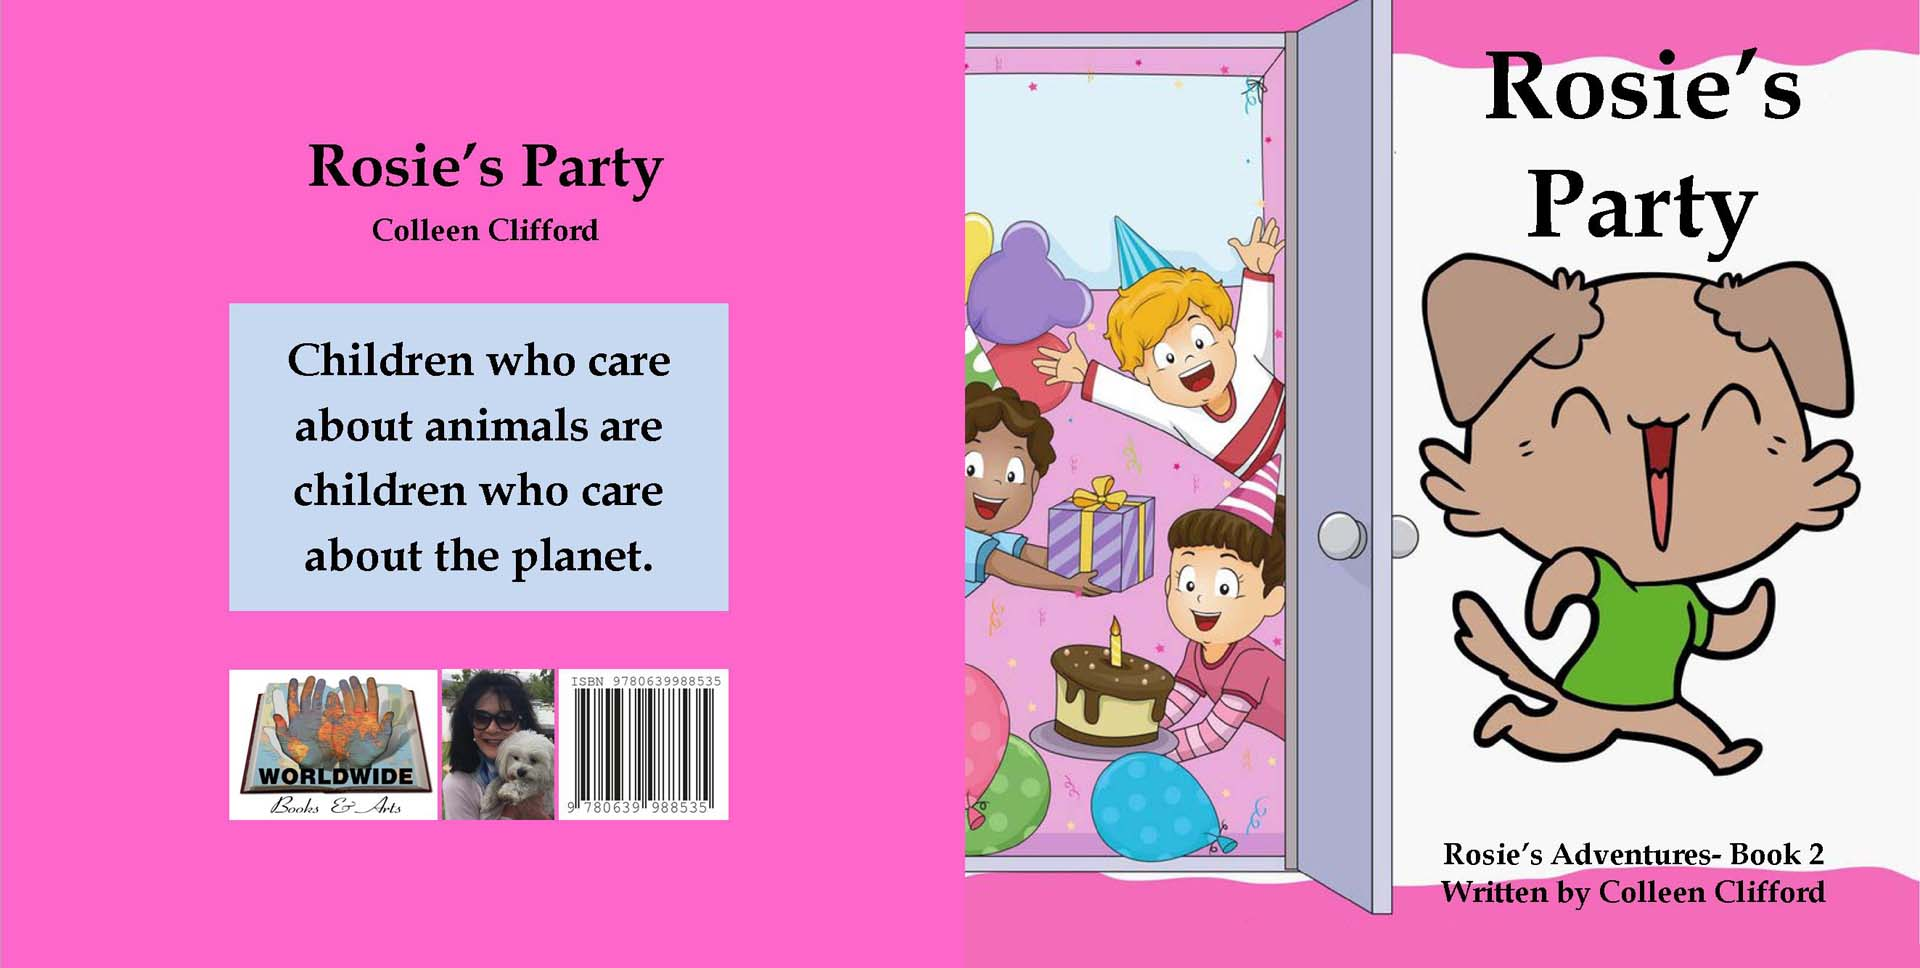 Rosie's party by Colleen Clifford - R90.00